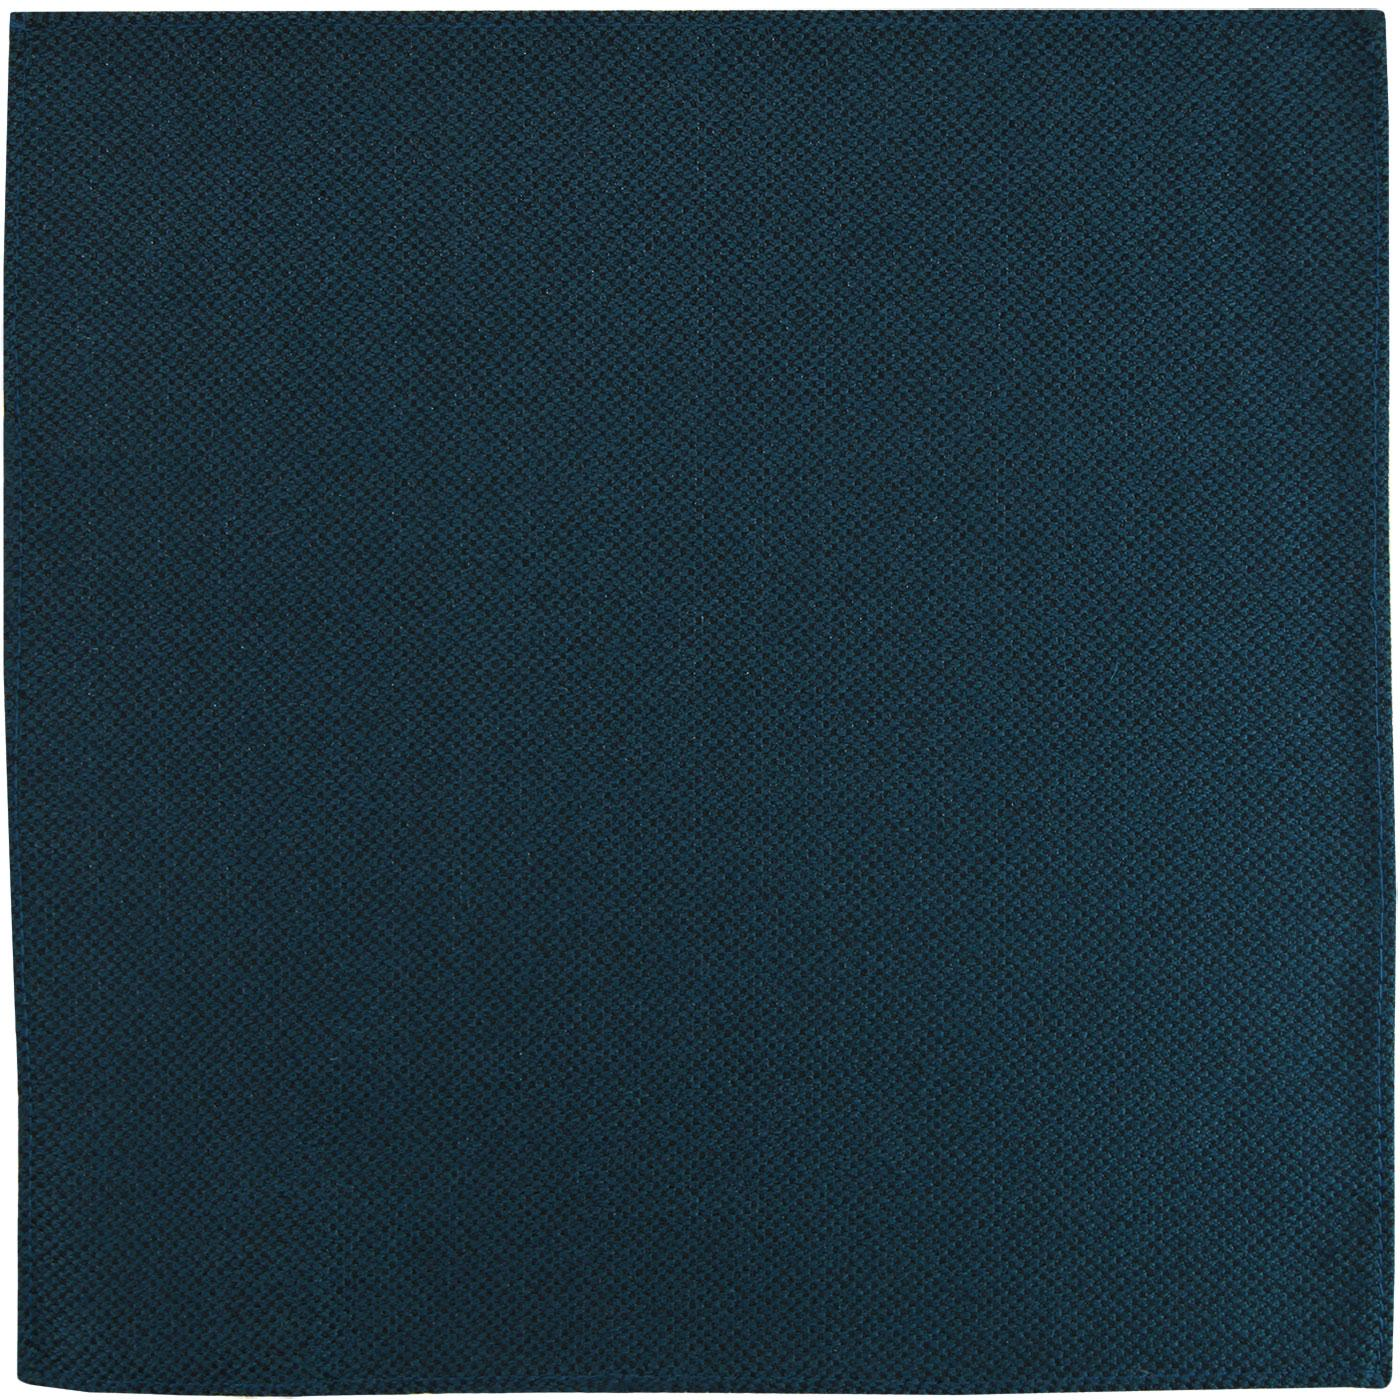 GIBSON LONDON Mod Woven Pocket Square in Teal